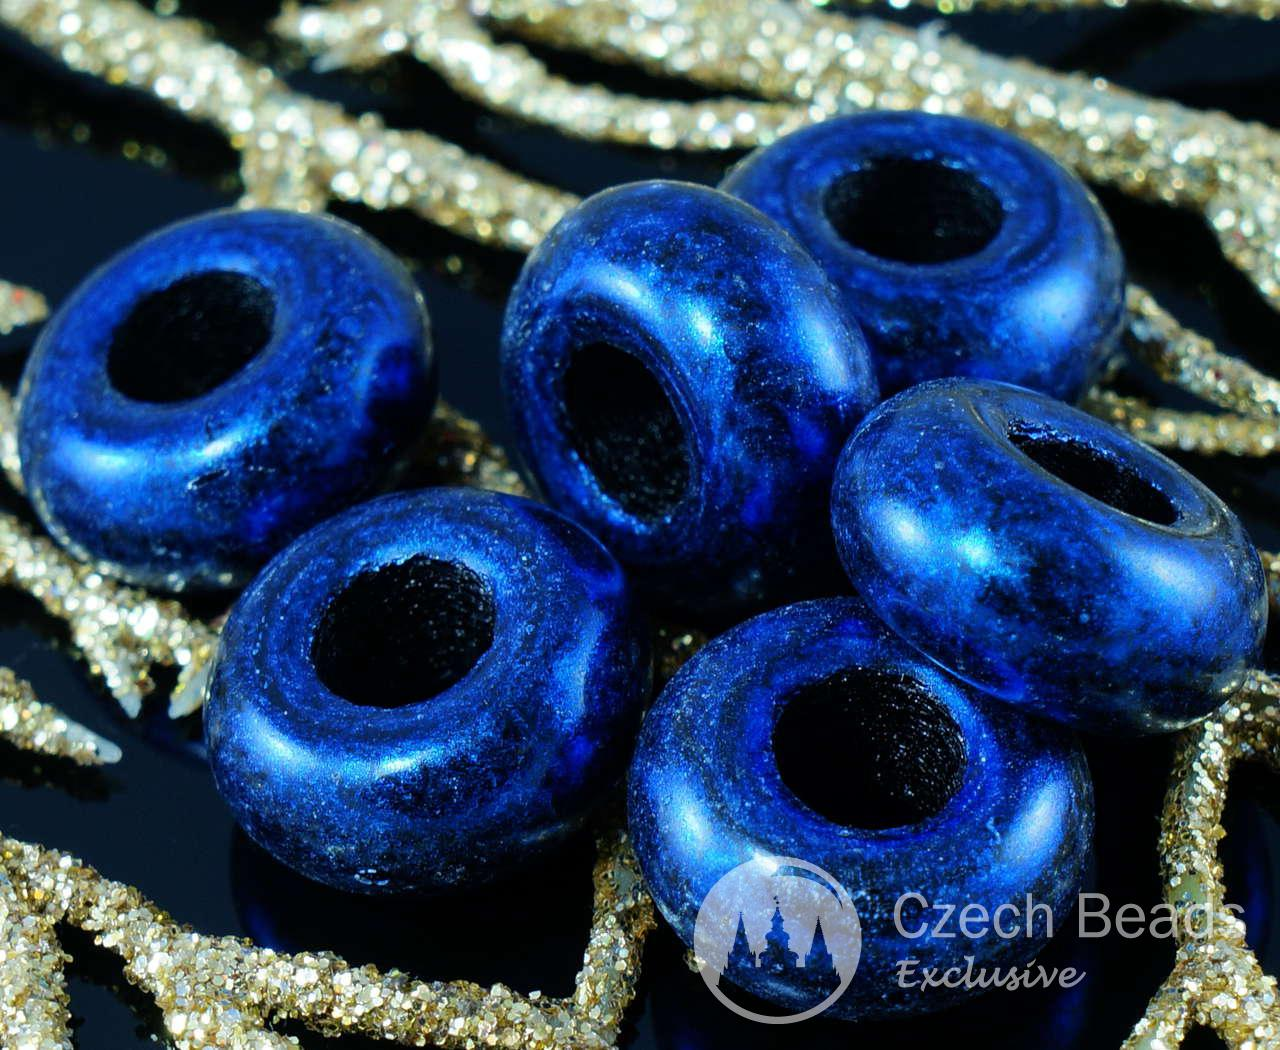 Large Blue Traverine Black Large Hole Ring Roller Beads 13mm x 6mm 6pcs for $2.27 from Czech Beads Exclusive